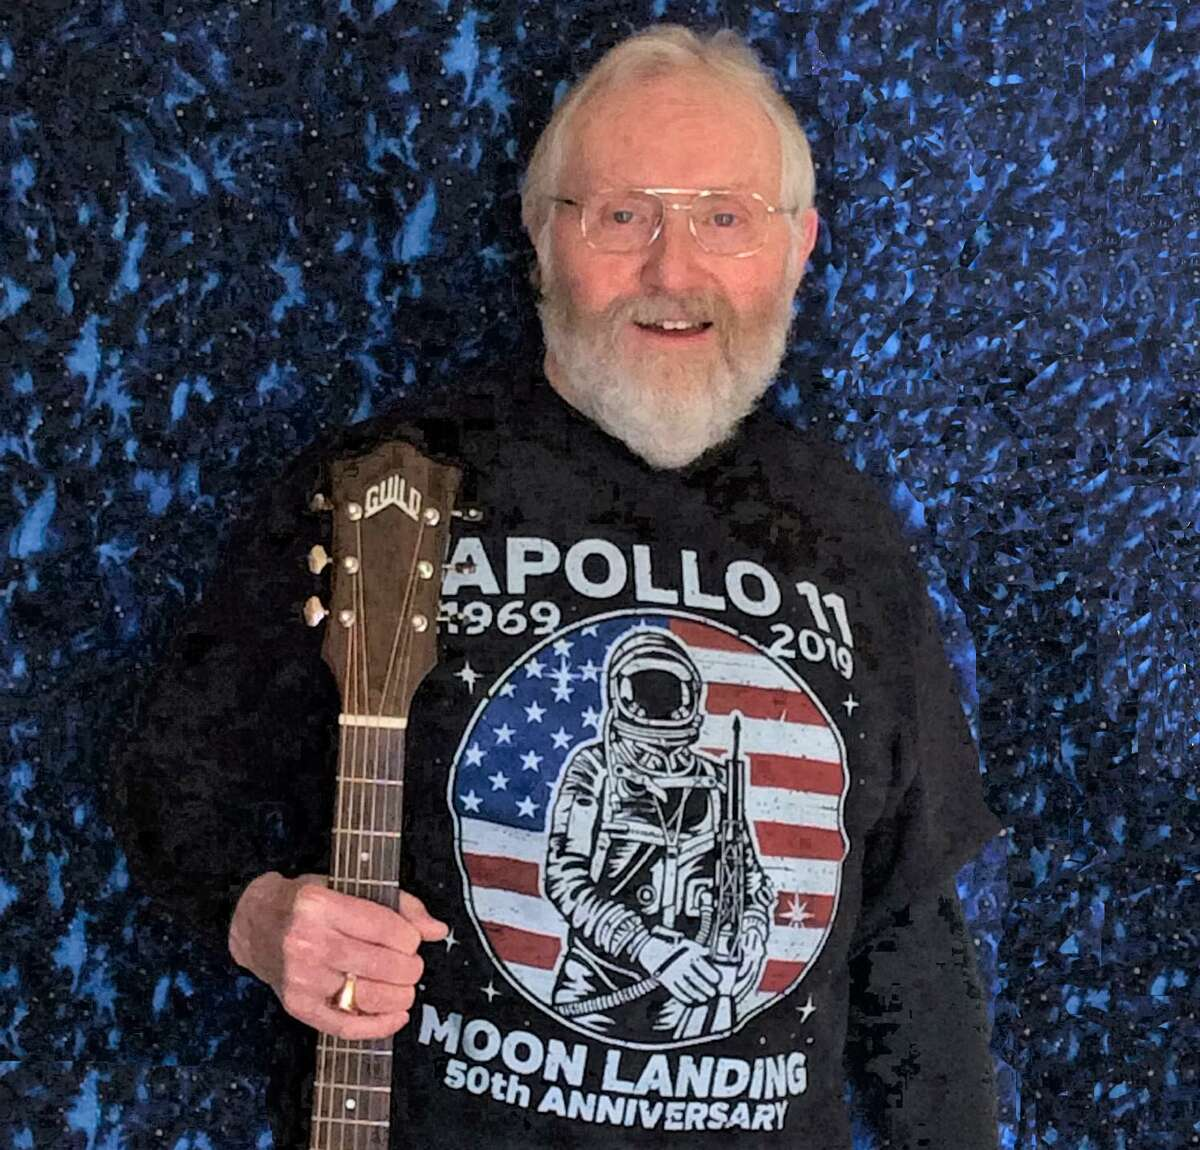 Connecticut's first state troubadour Tom Callinan has written a song called